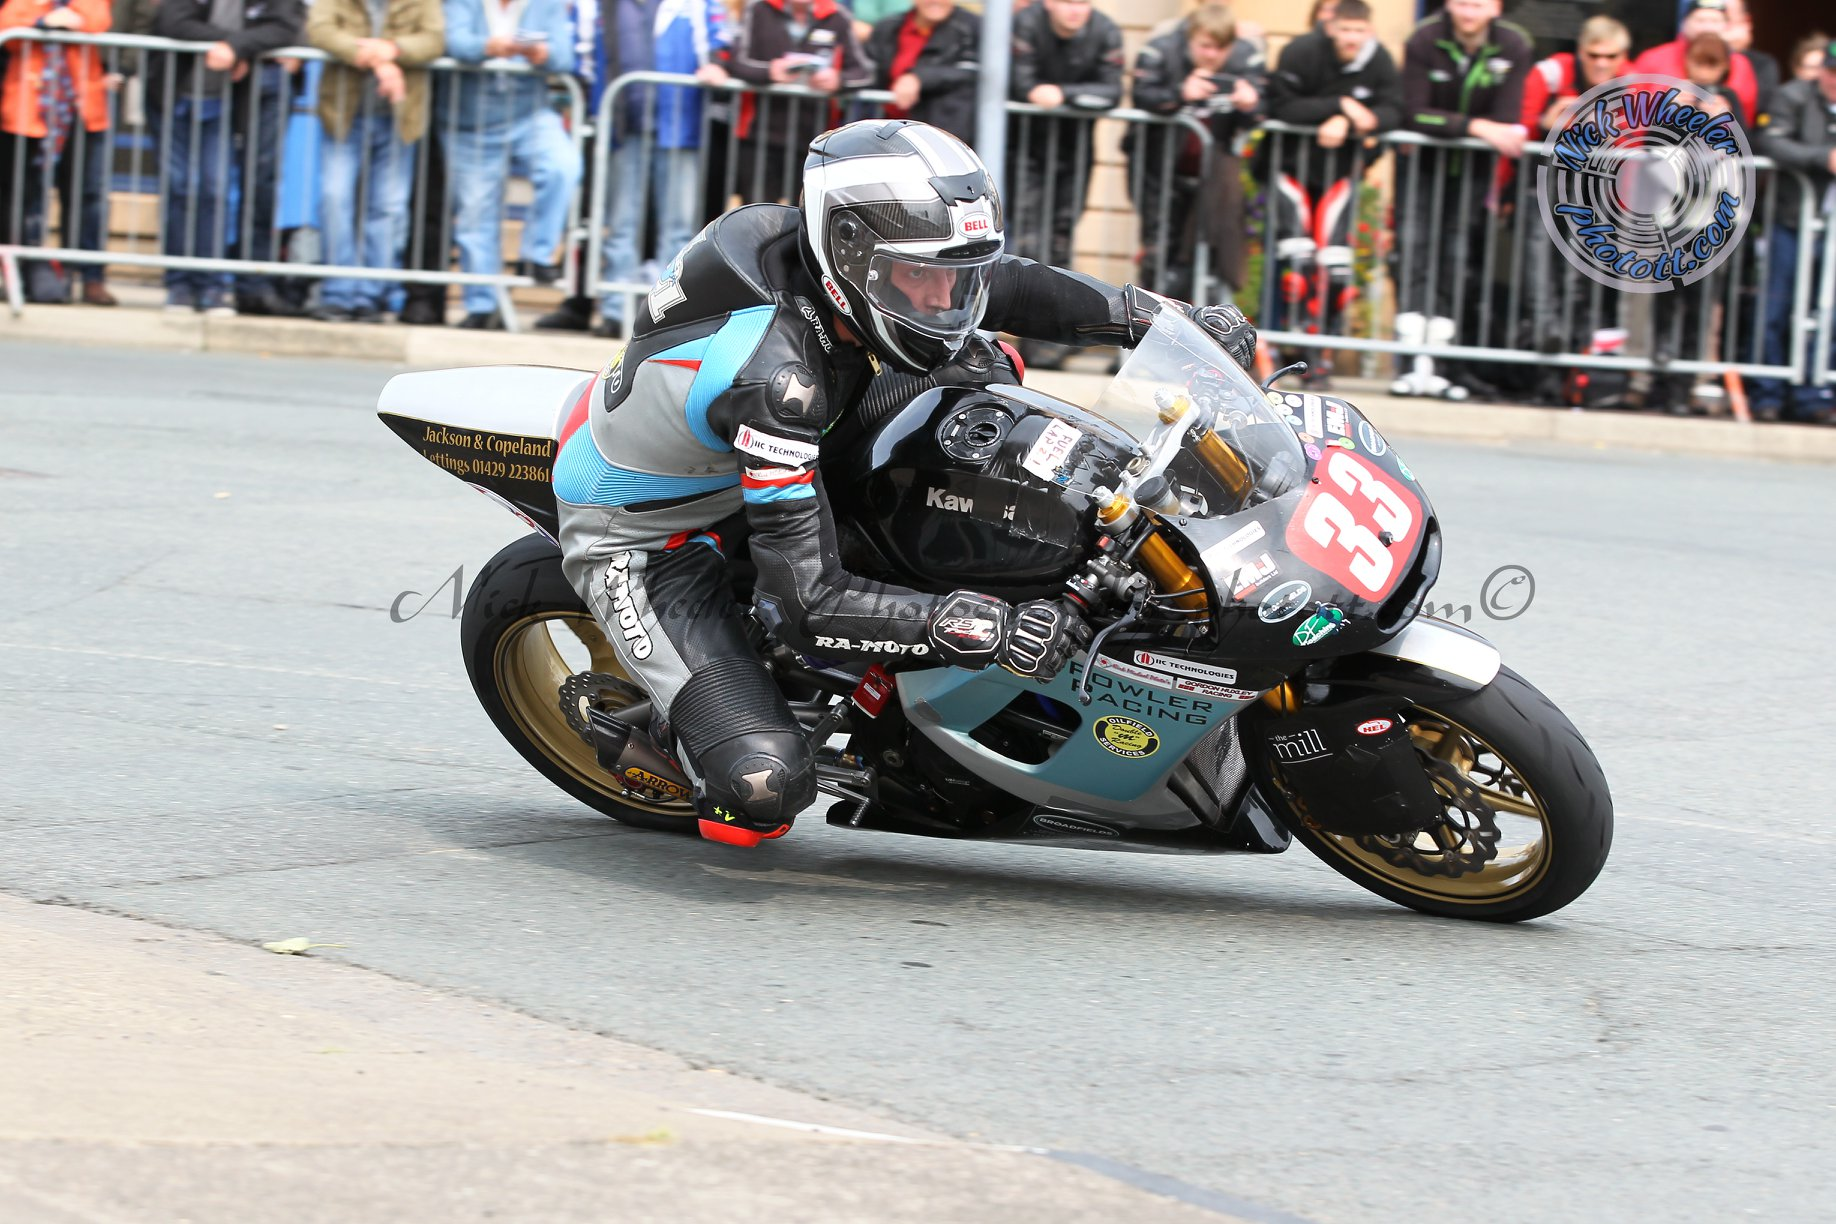 Fowler Confirms Second Manx GP Expedition